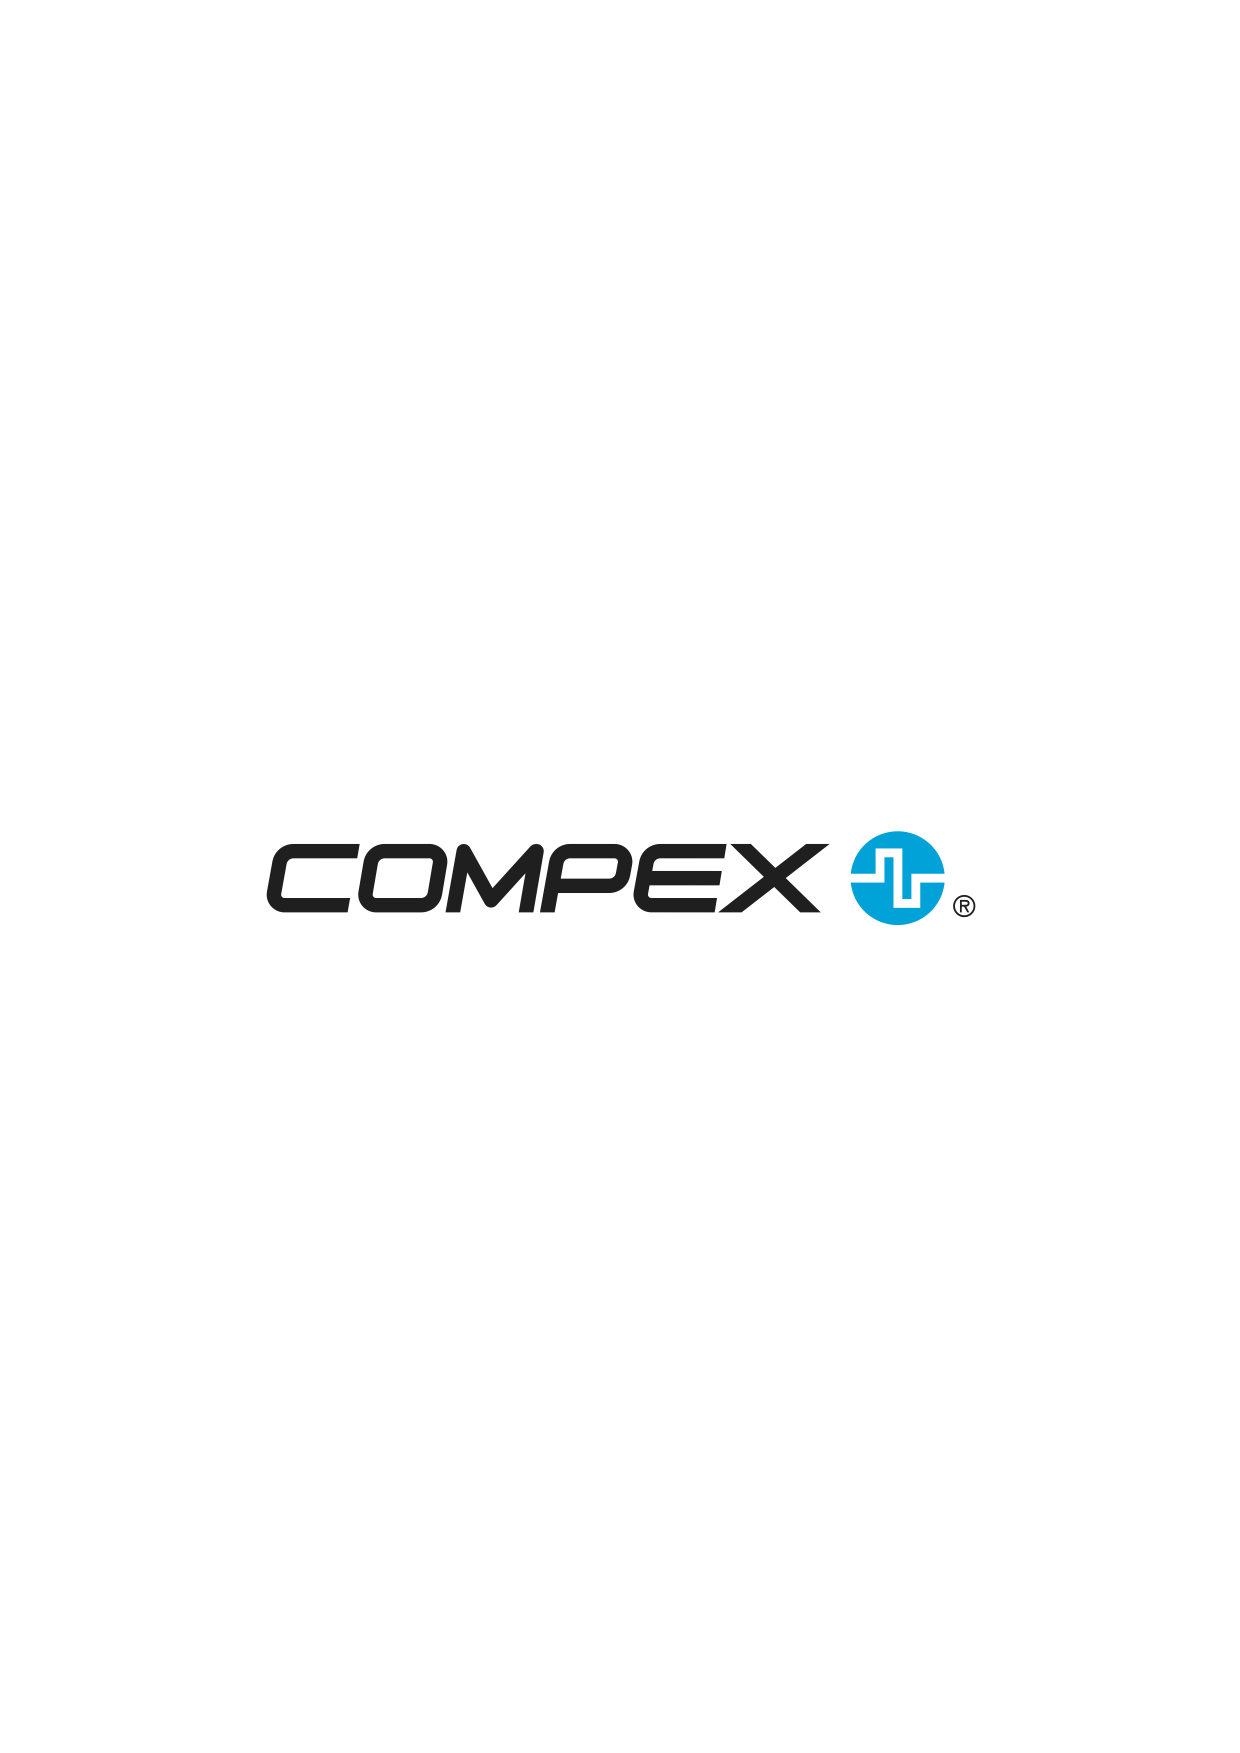 Compex_Icon_Logo_2Colour_Flat PNG